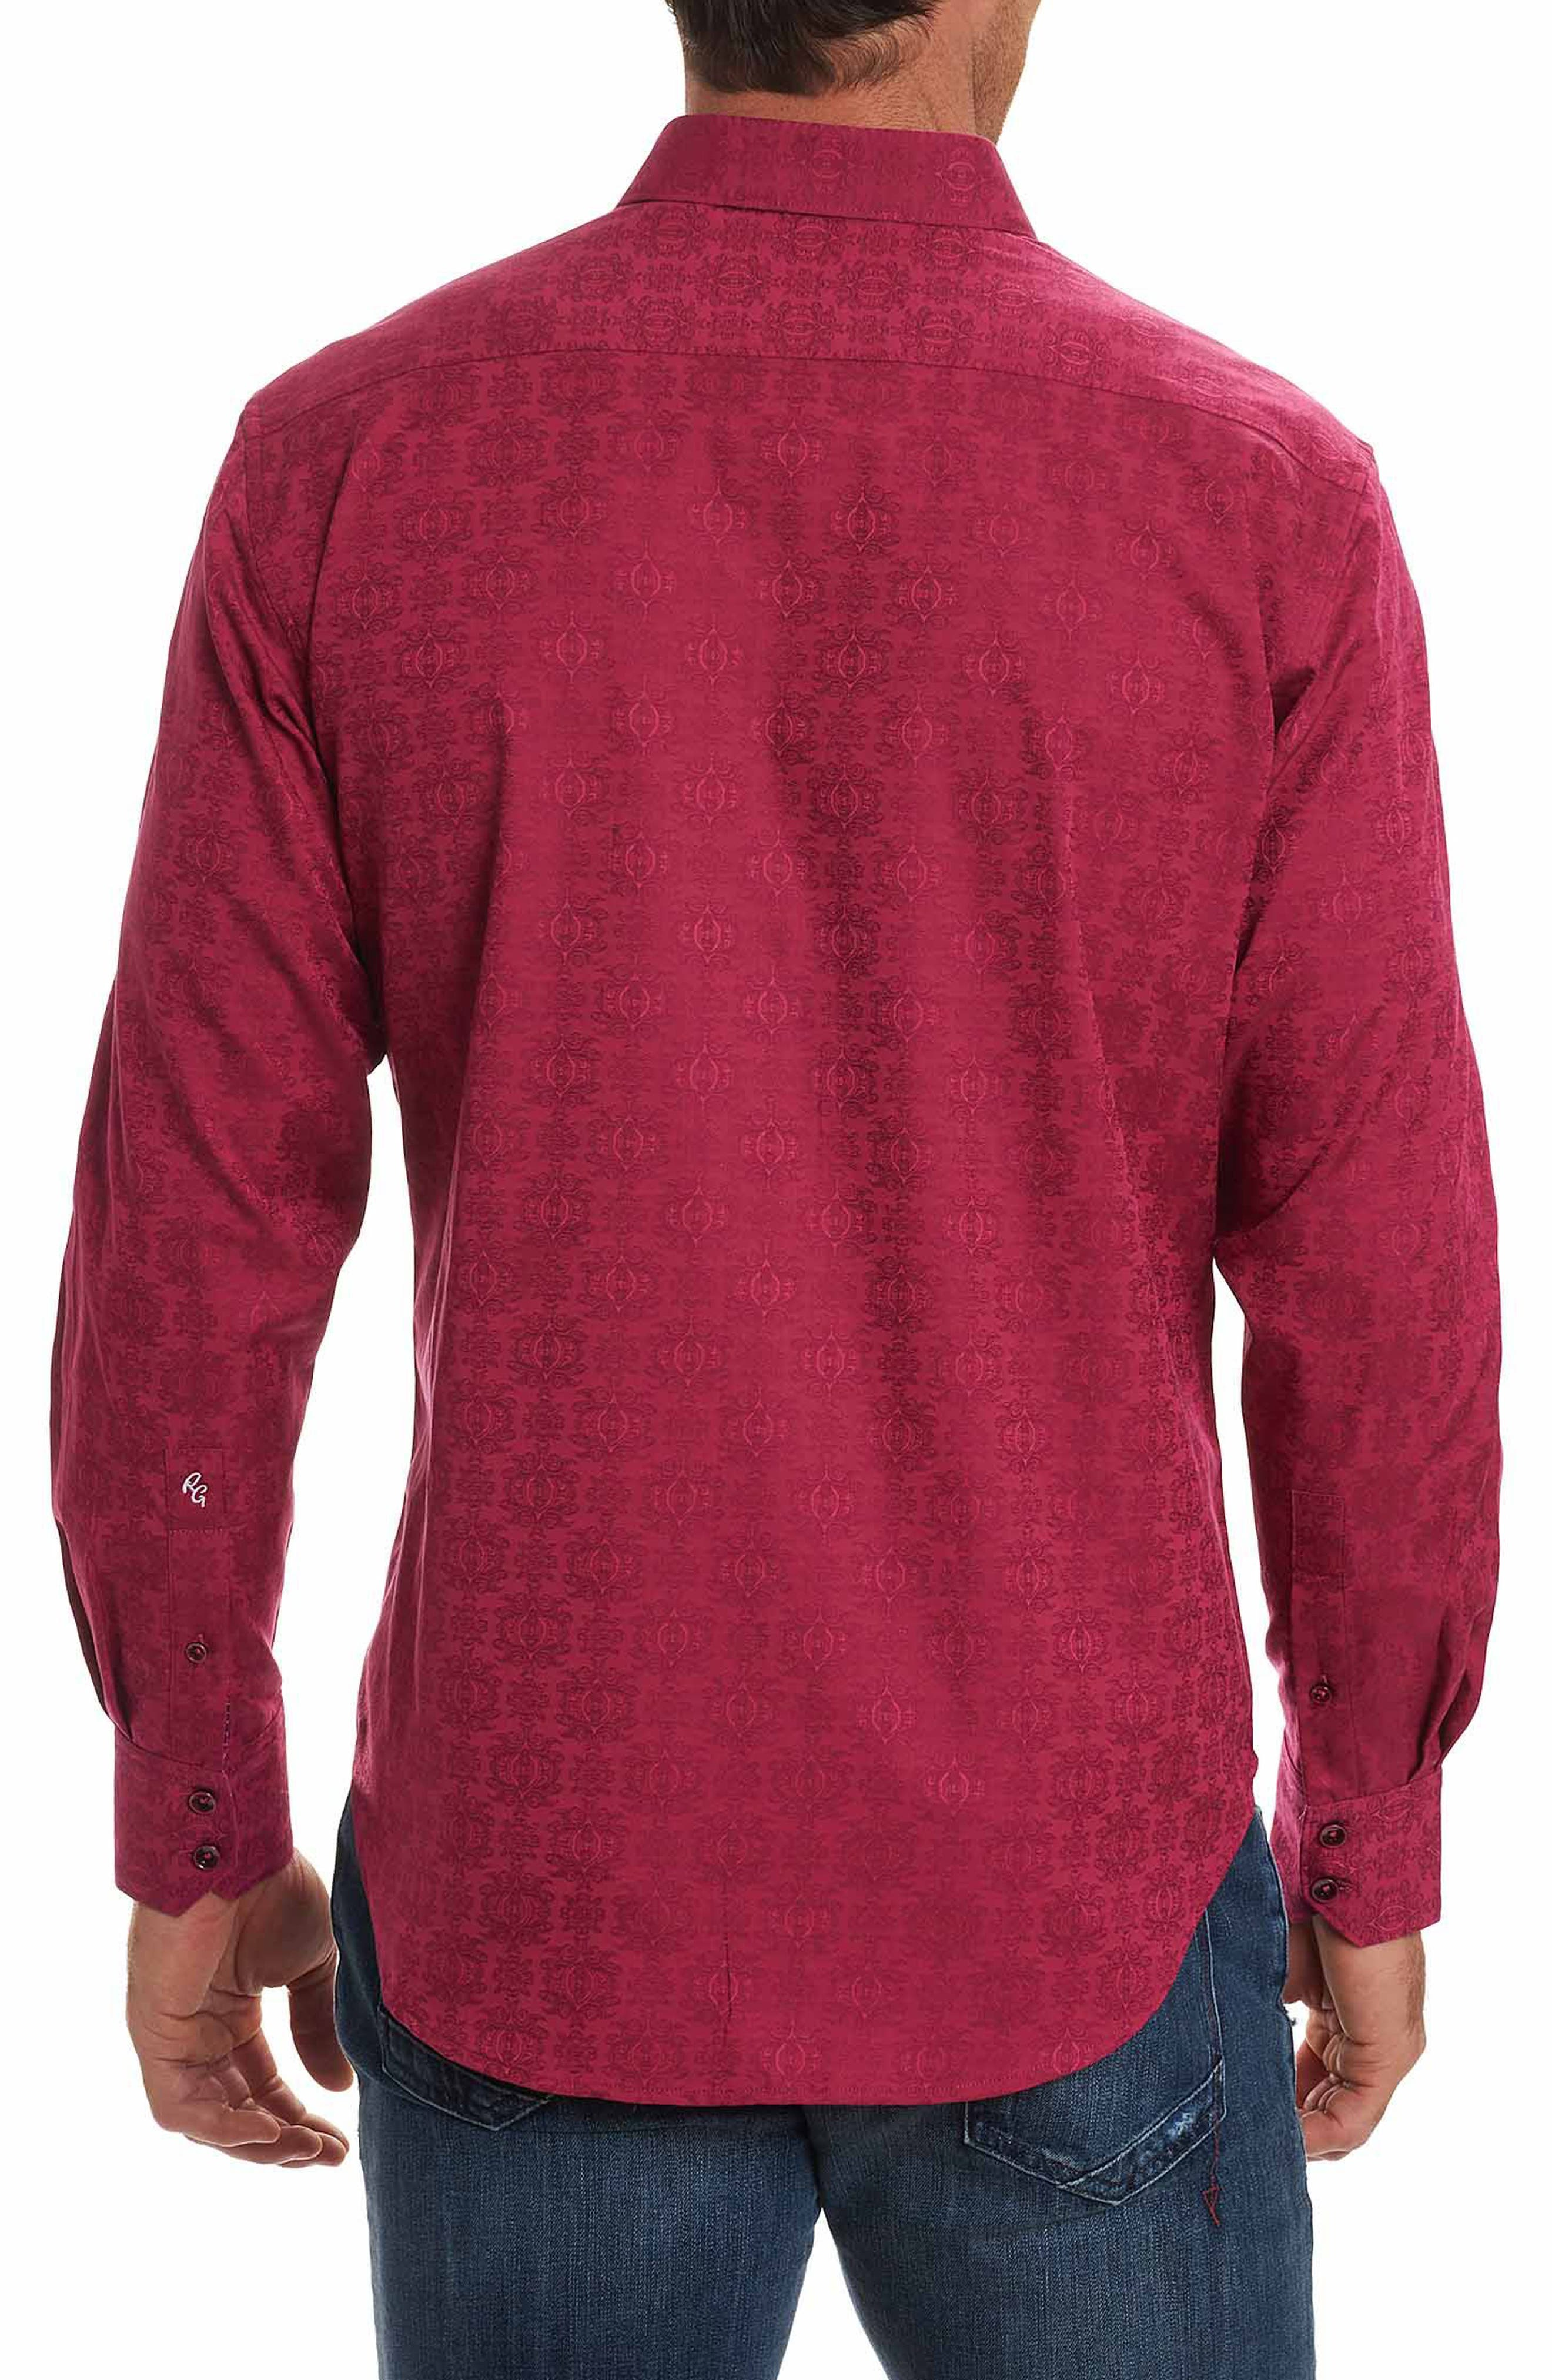 Cullen Classic Fit Jacquard Sport Shirt,                             Alternate thumbnail 4, color,